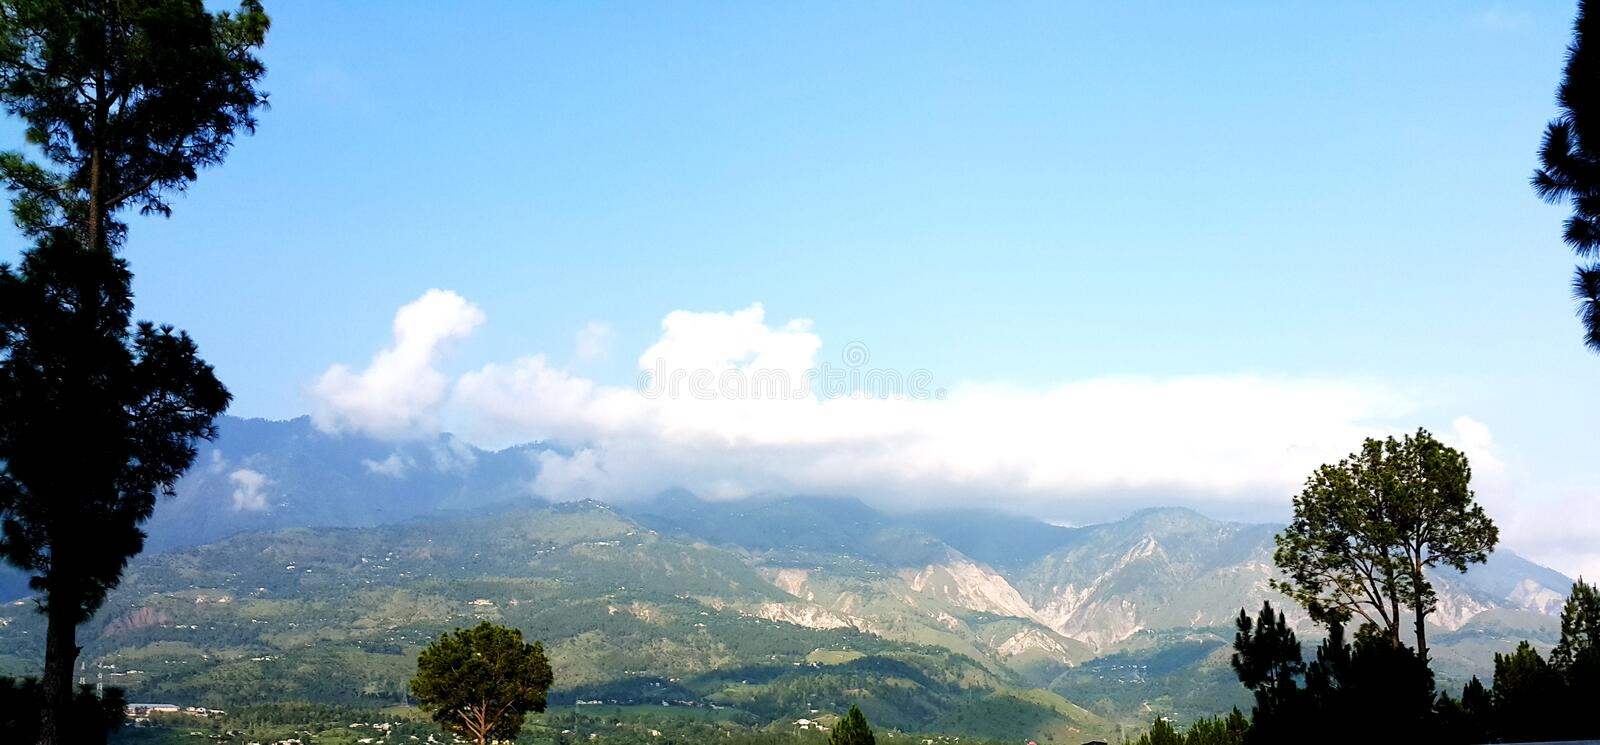 Lower Himalayan mountains range in khaghan valley royalty free stock image